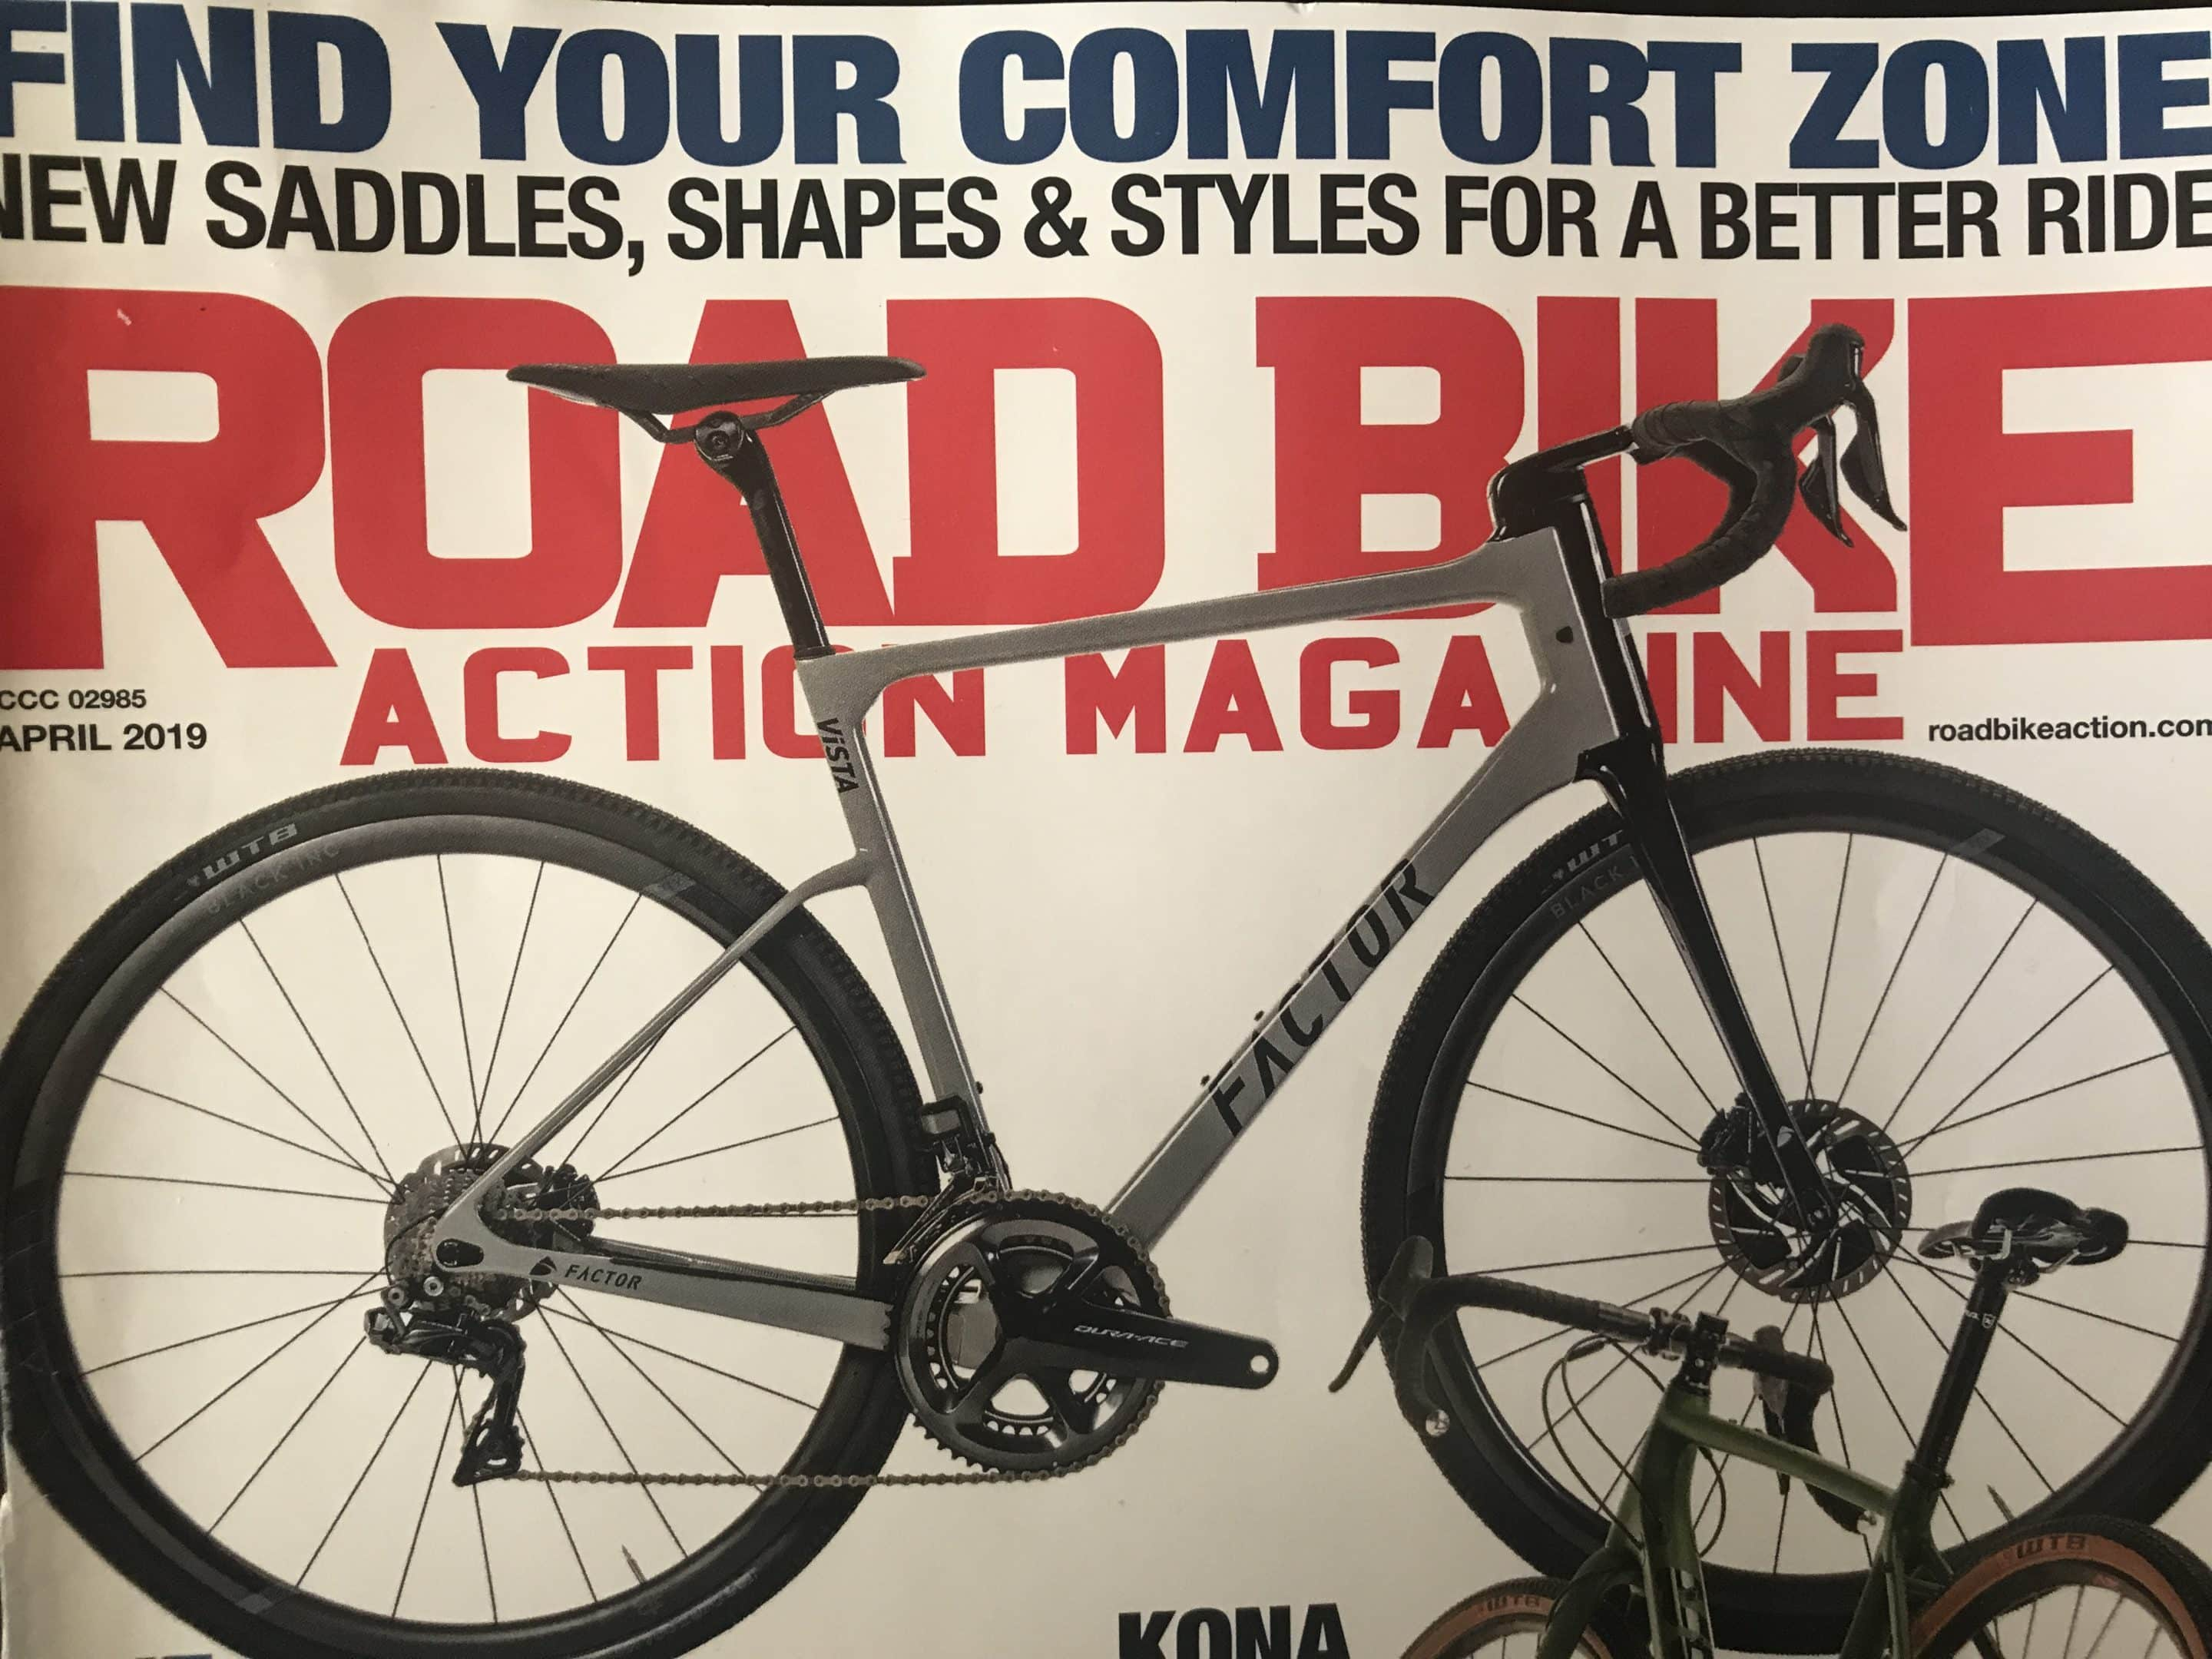 Infinity Series Saddles: Road Bike Action Magazine Review